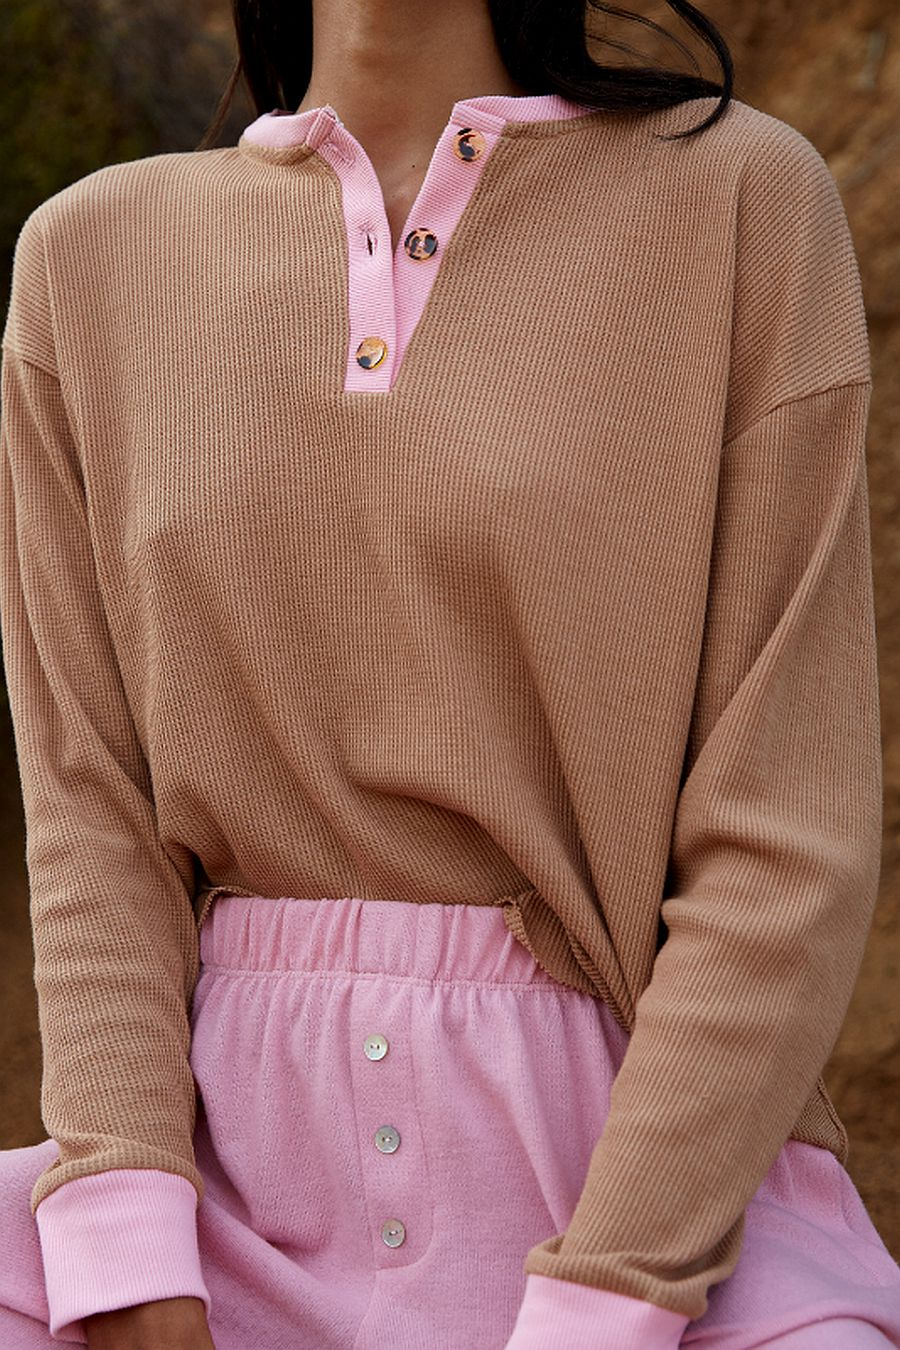 DONNI. Duo Thermal Henley - Camel/Rose